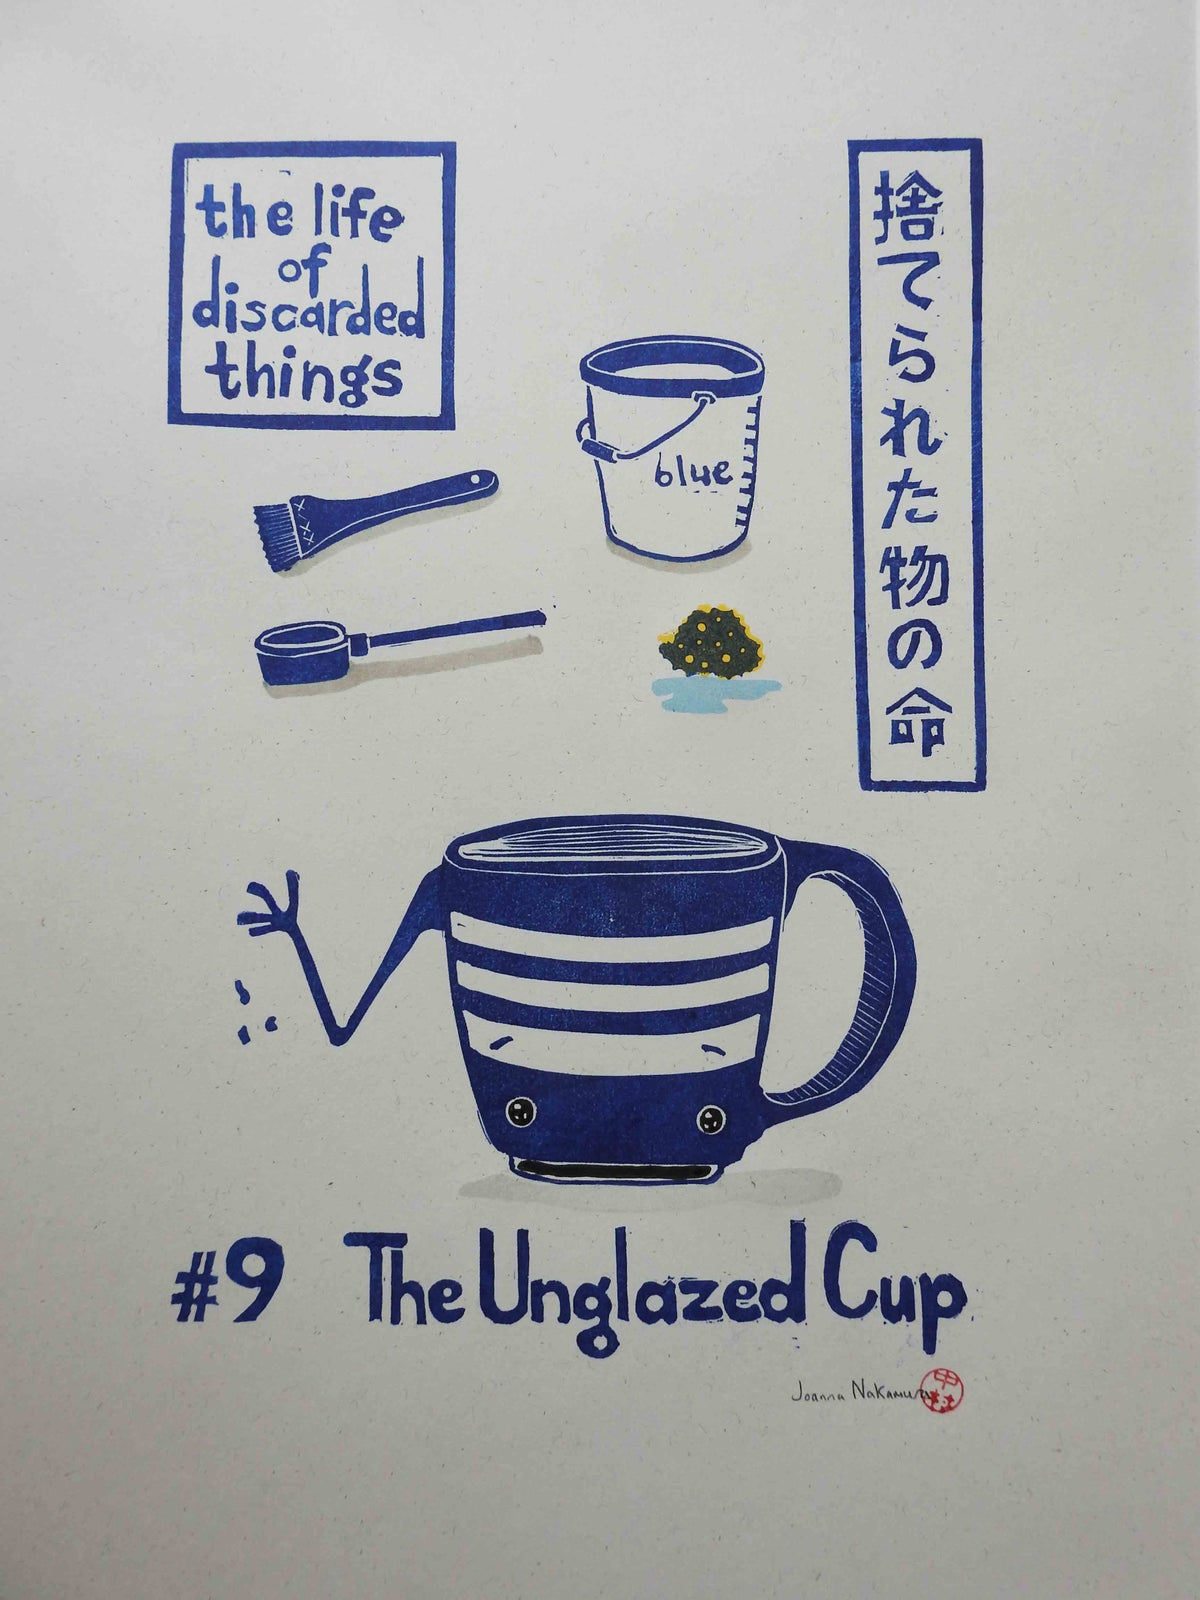 Image of The Life of Discarded Things - No.9 'The Unglazed Cup'